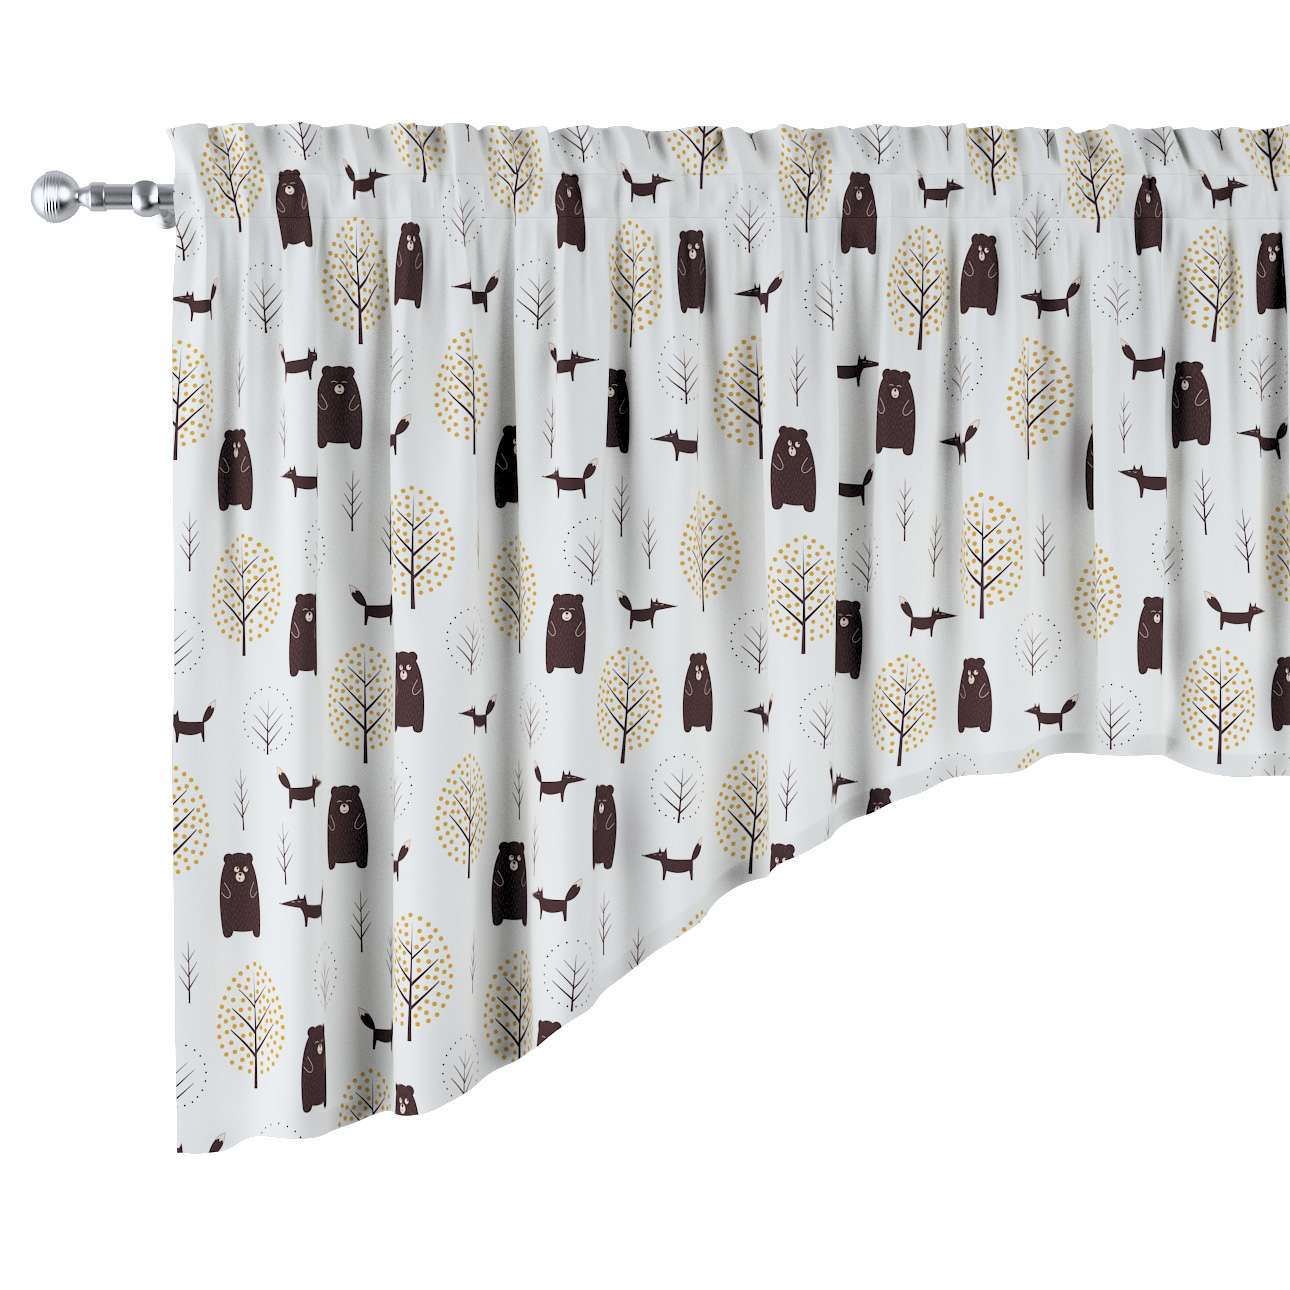 Bow lambrequin in collection Magic Collection, fabric: 500-19